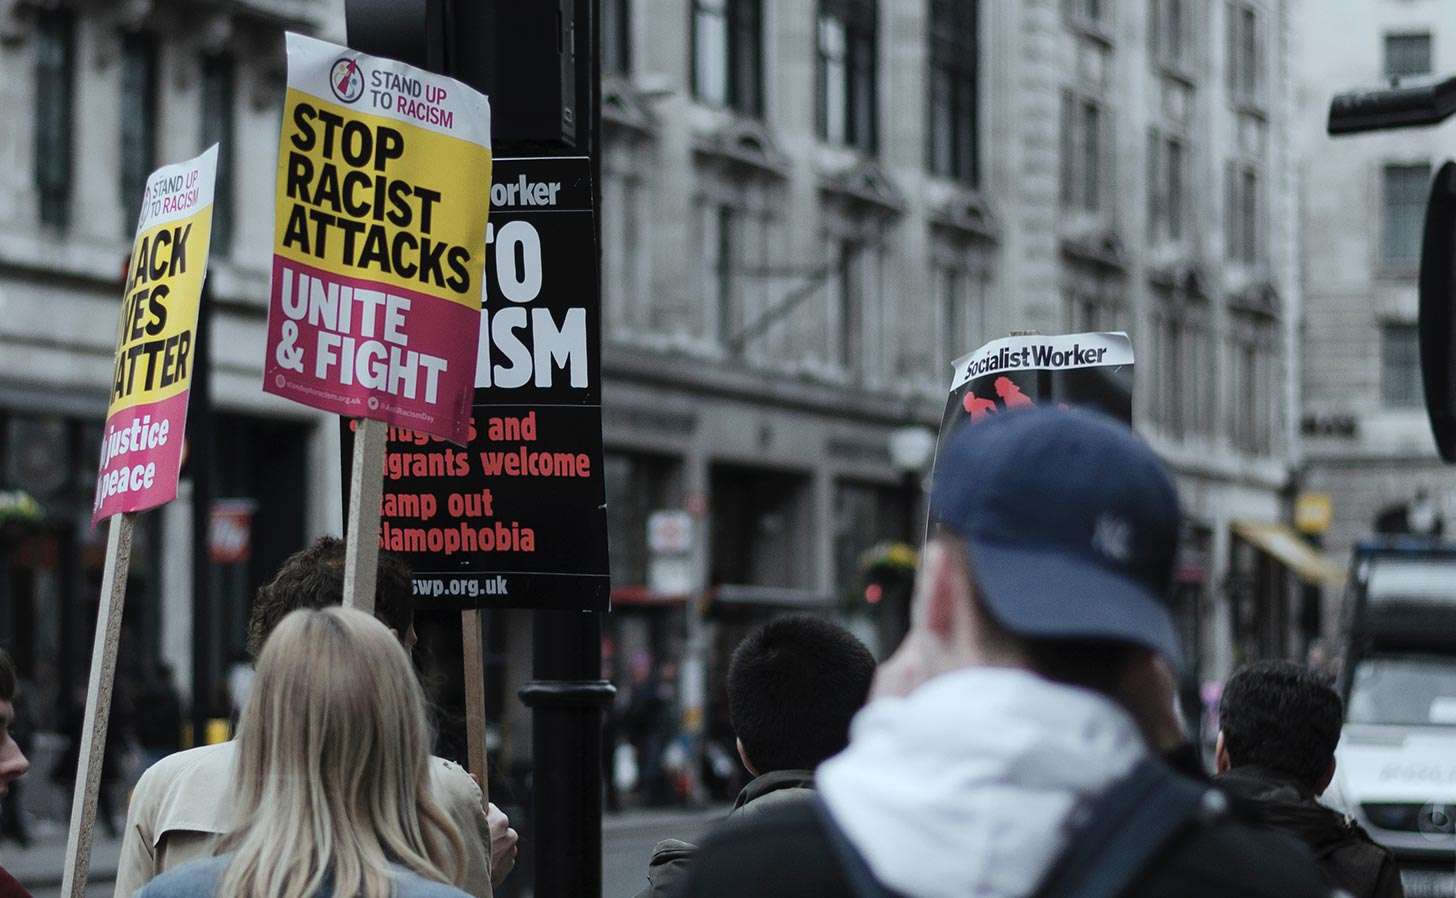 Brittisk demonstration mot rasism. Foto: Henry Be / Unsplash